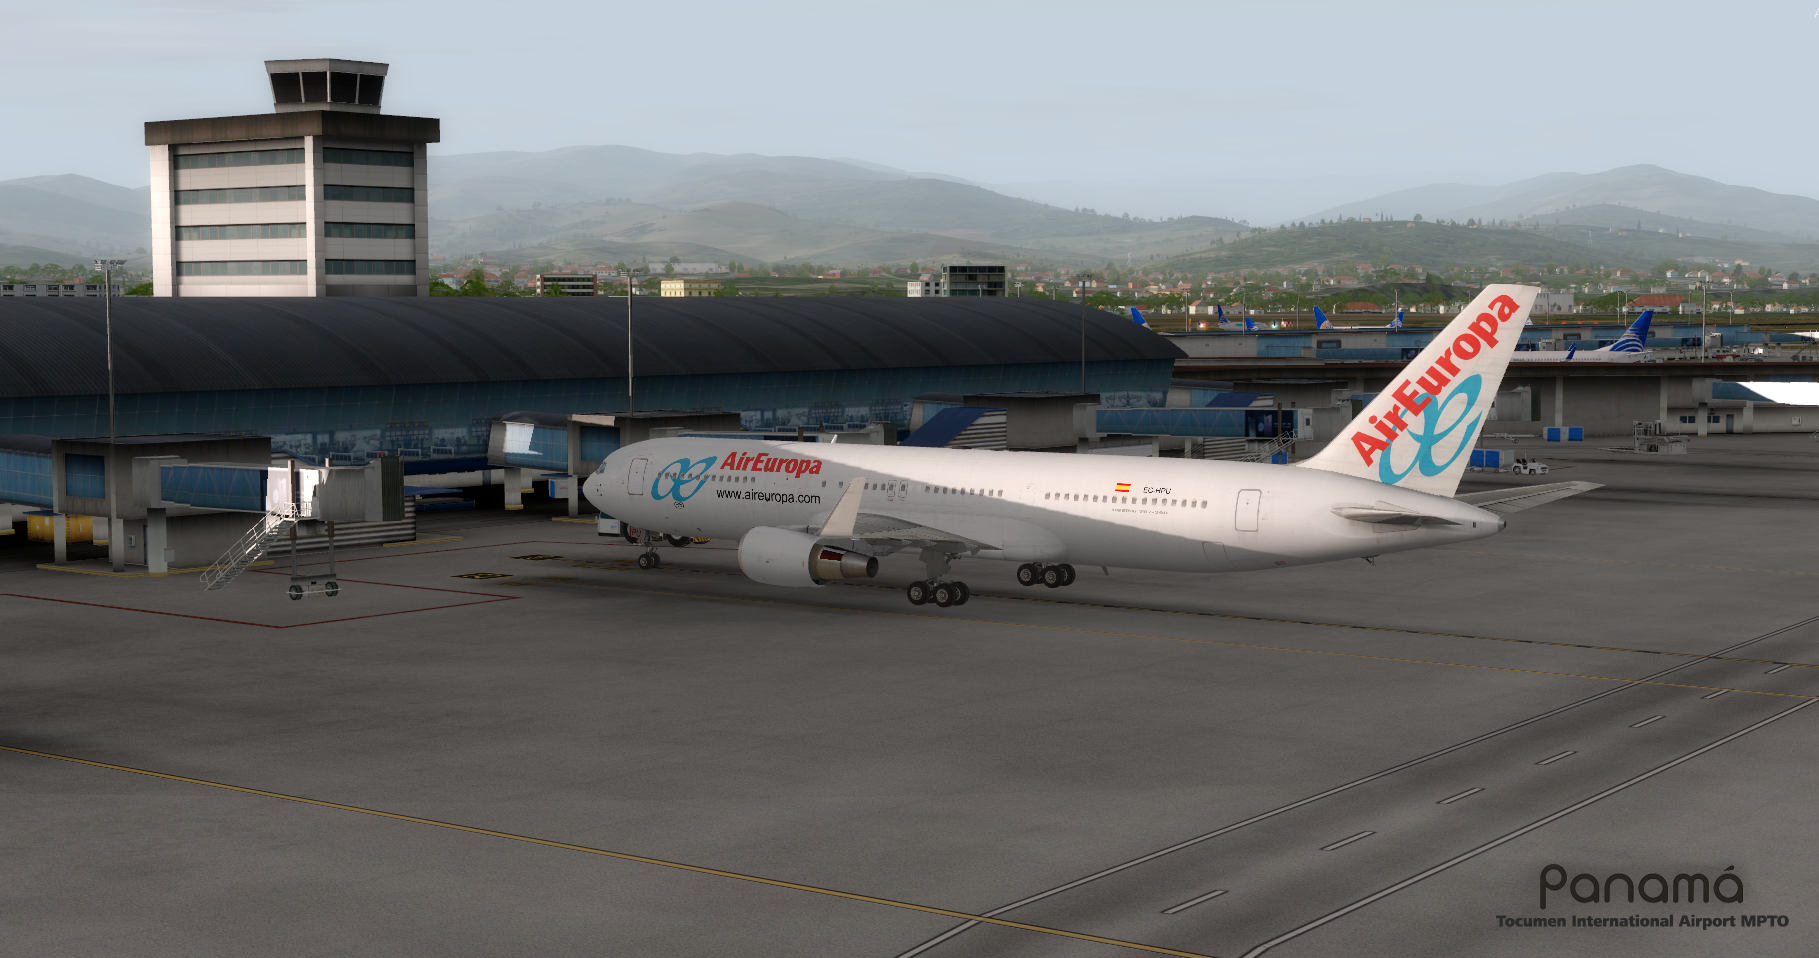 FSIMSTUDIOS - TOCUMEN INTERNATIONAL AIRPORT MPTO PANAMA CITY FSX P3D